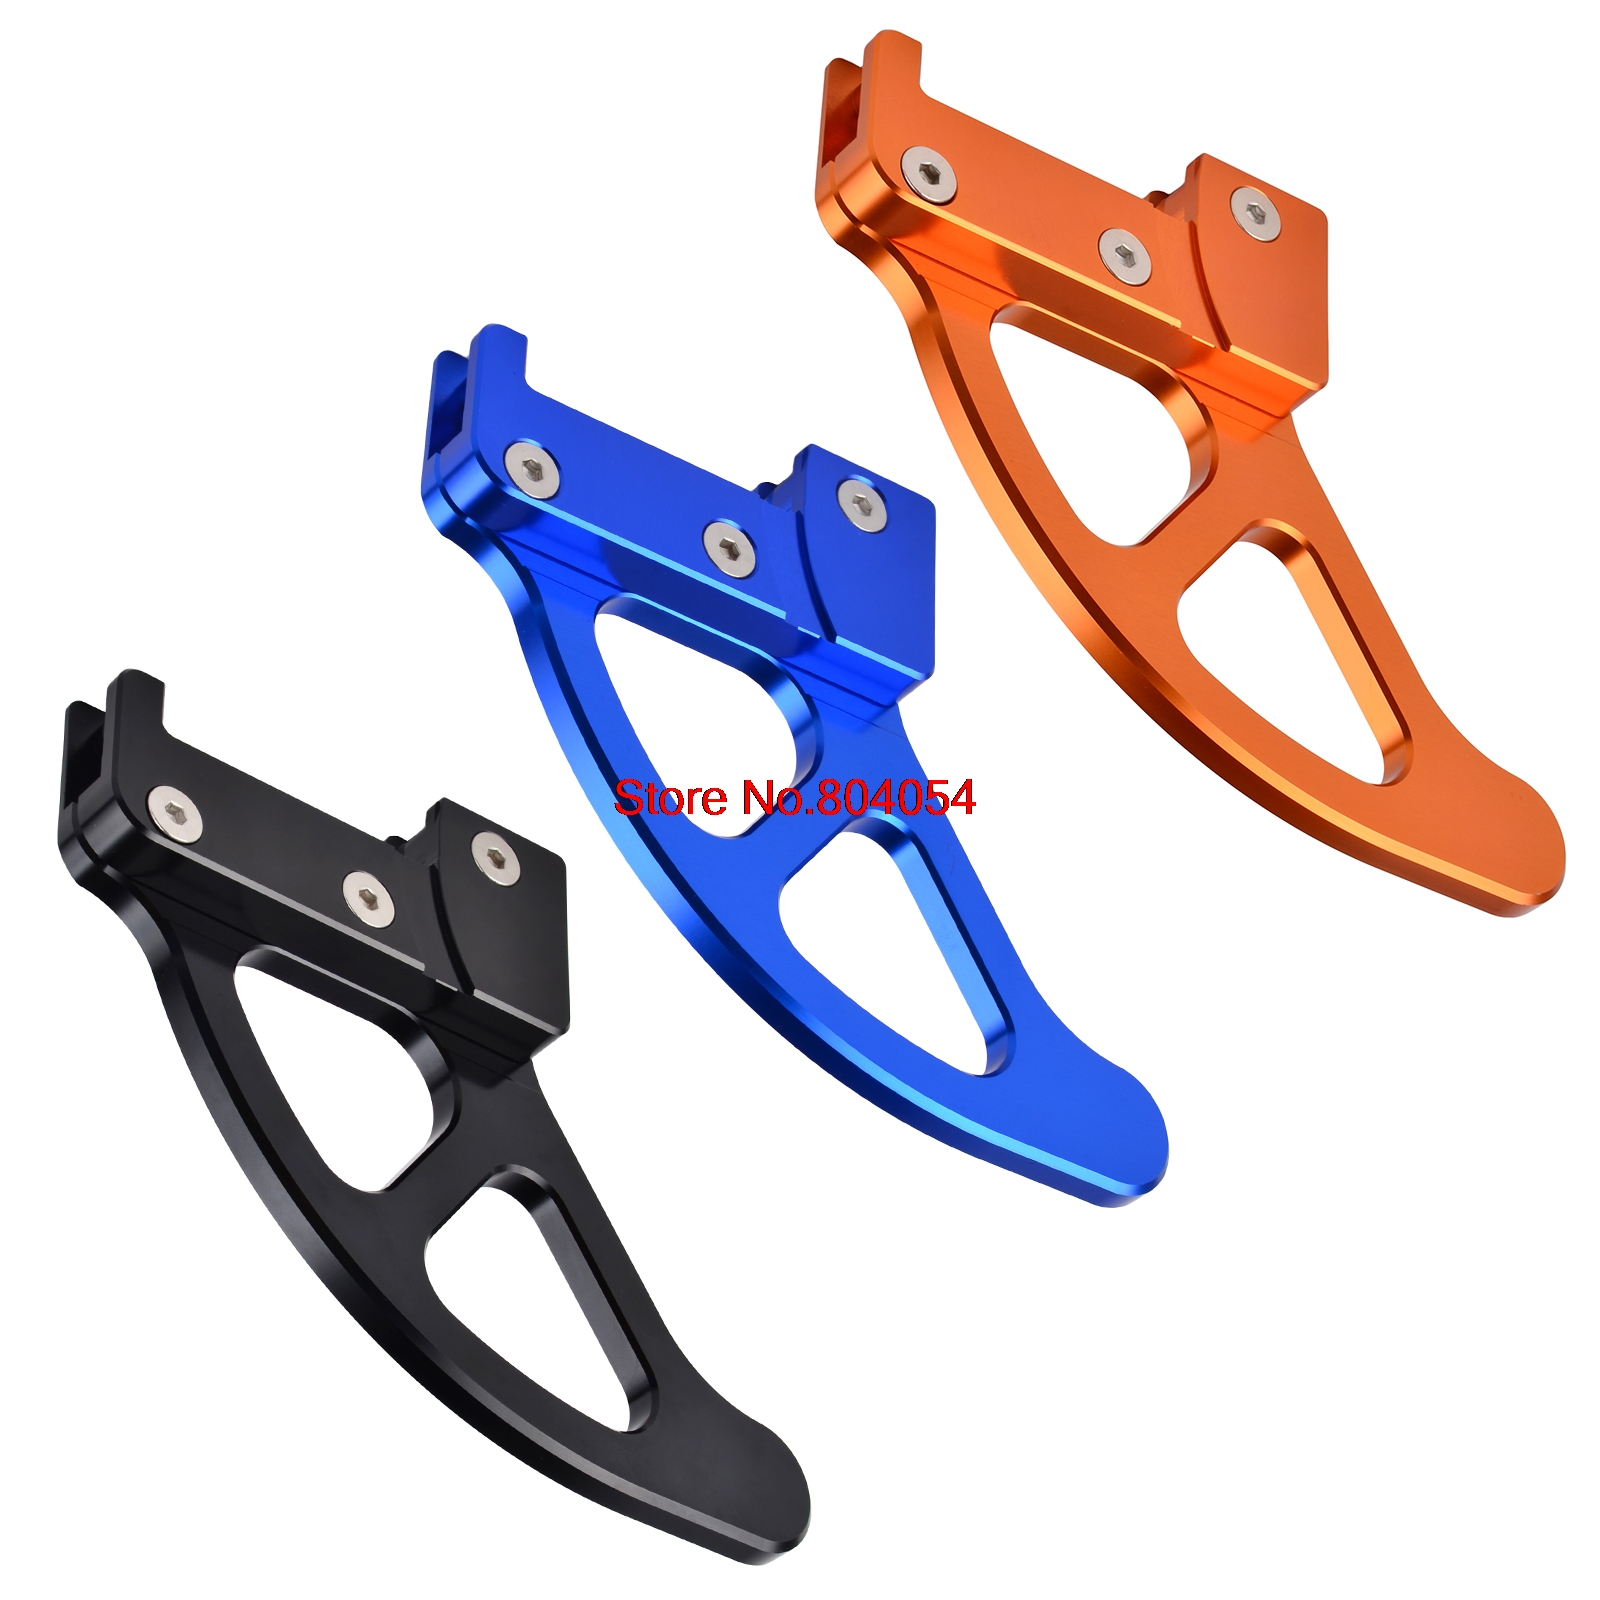 Rear Brake Disc Guard Protector For KTM 85 125 200 250 300 350 400 450 500 525 530 SX XC SXF XCW EXC EXC-F SXS XCF-W MXC SMR billet axle blocks chain adjuster for ktm 125 150 200 250 300 350 400 450 500 505 525 530 exc exc f xc w xcw xcf w 2000 2015